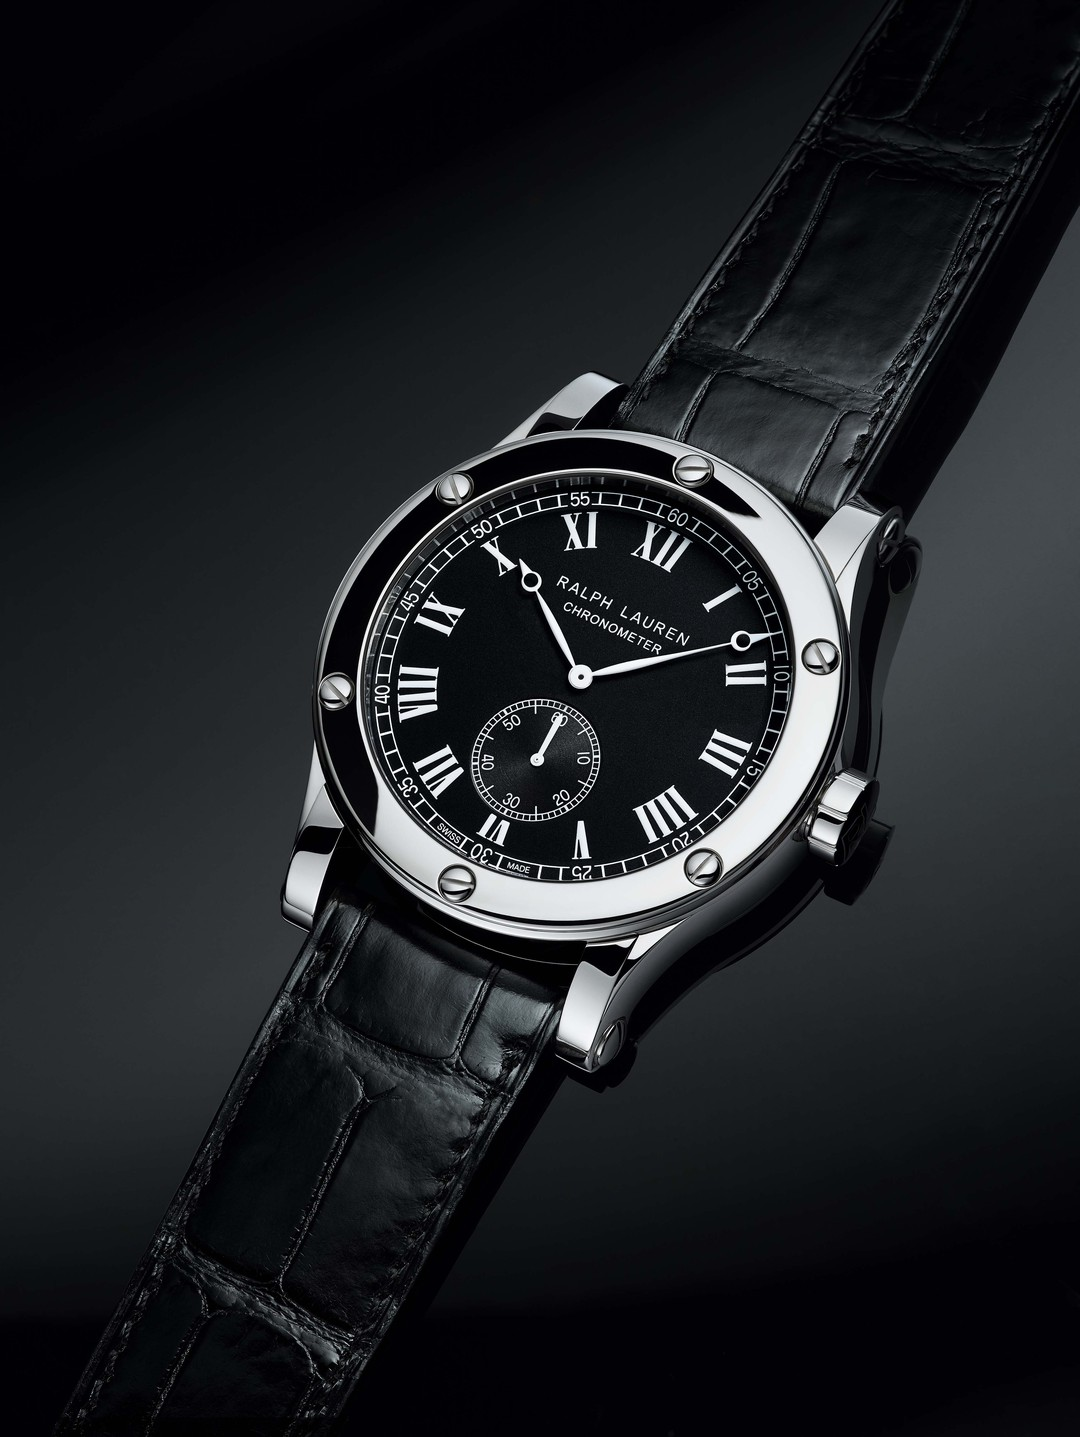 The handsome Ralph Lauren Sporting Classic Chronometer marries the elegance of a classical black tie dial with a rugged sporty feel thanks to its solid stainless steel case and riveted bezel.